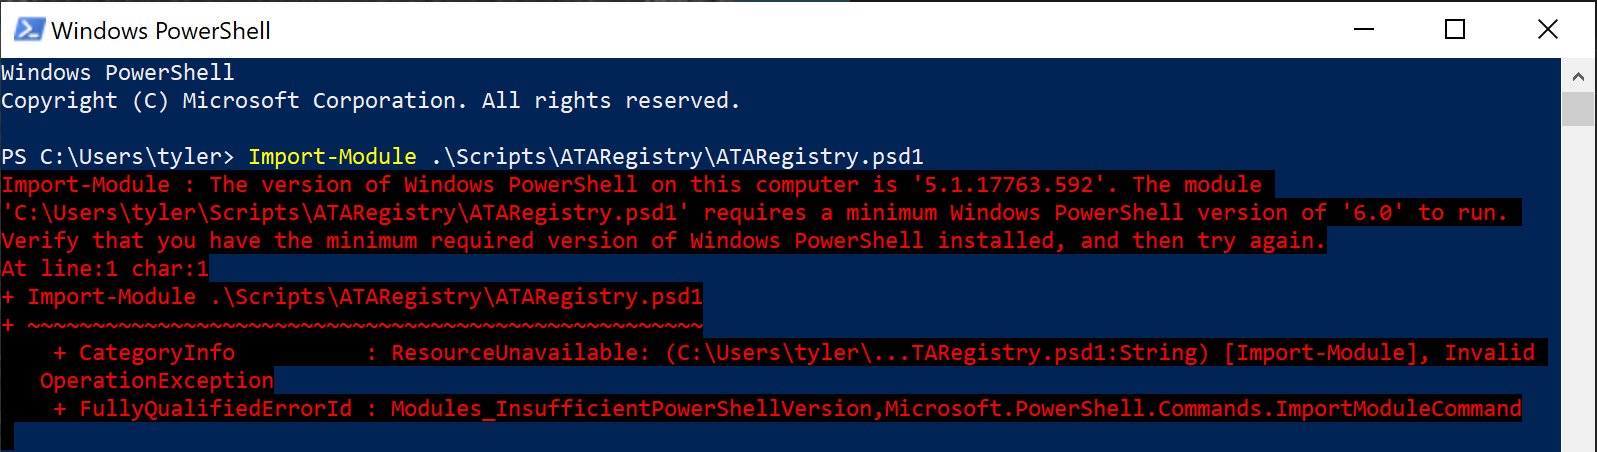 Requiring certain versions of PowerShell